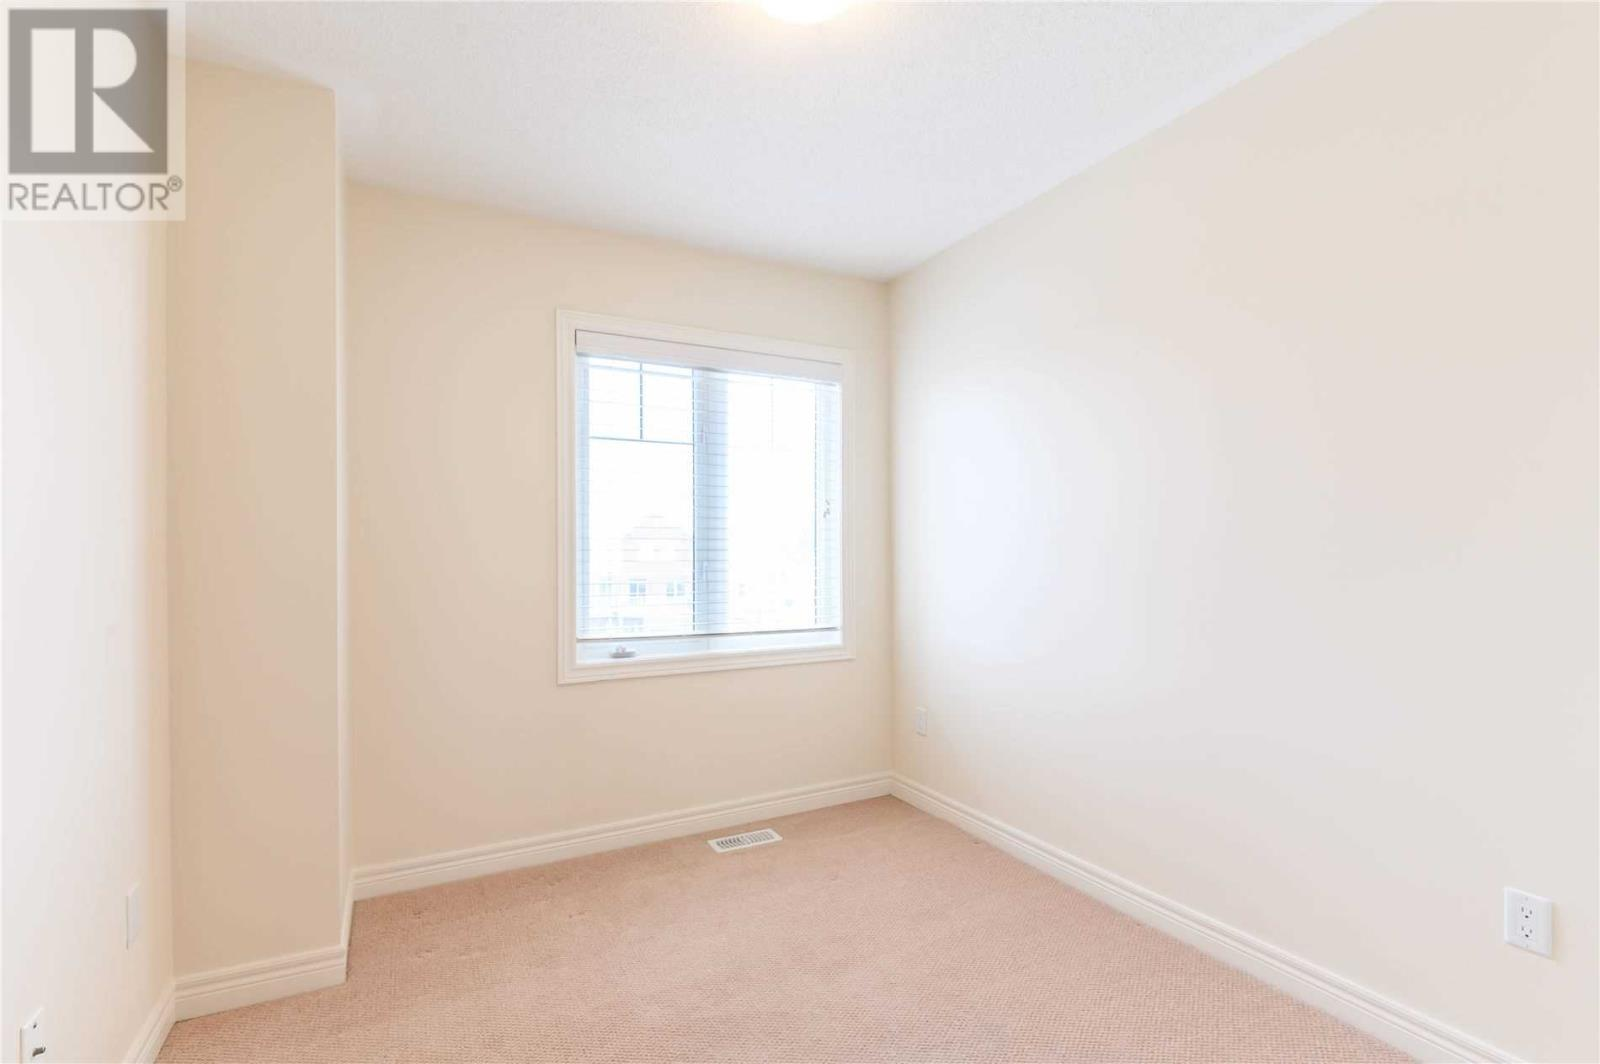 5710 Long Valley Rd, Mississauga, Ontario  L5M 0M1 - Photo 16 - W4674367